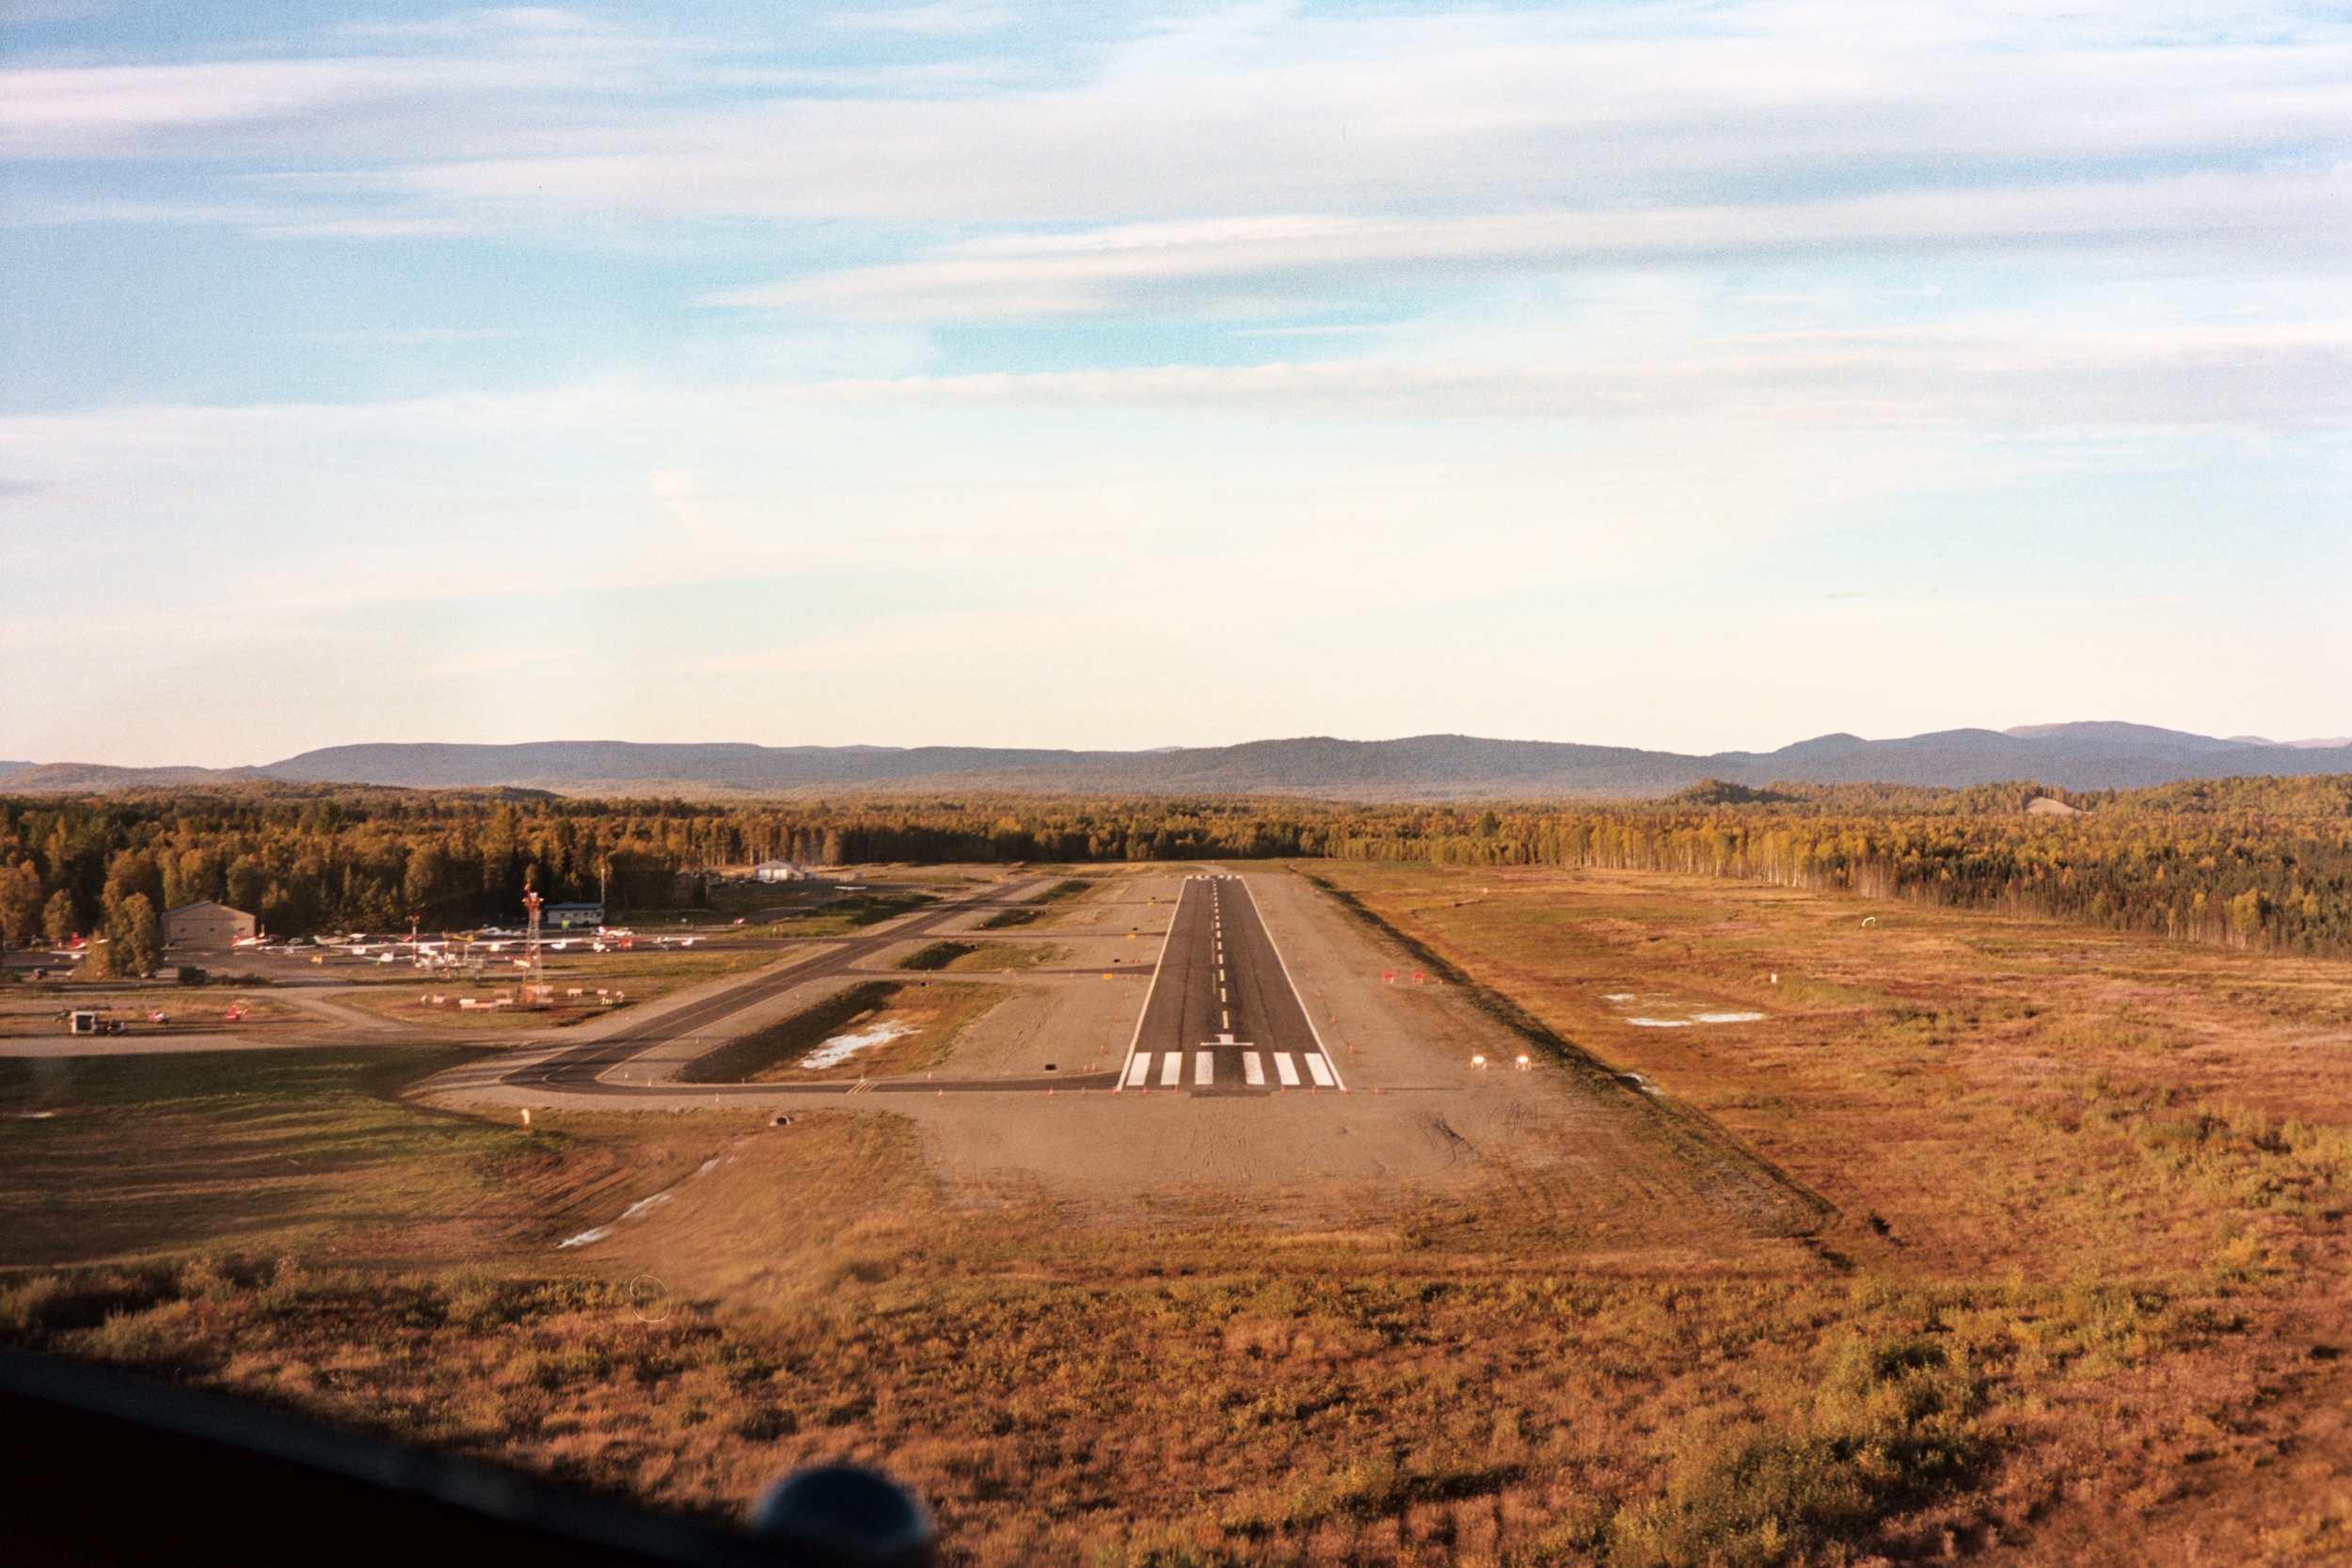 Landing on the runway back in Talkeetna after a beautiful, smooth flight!